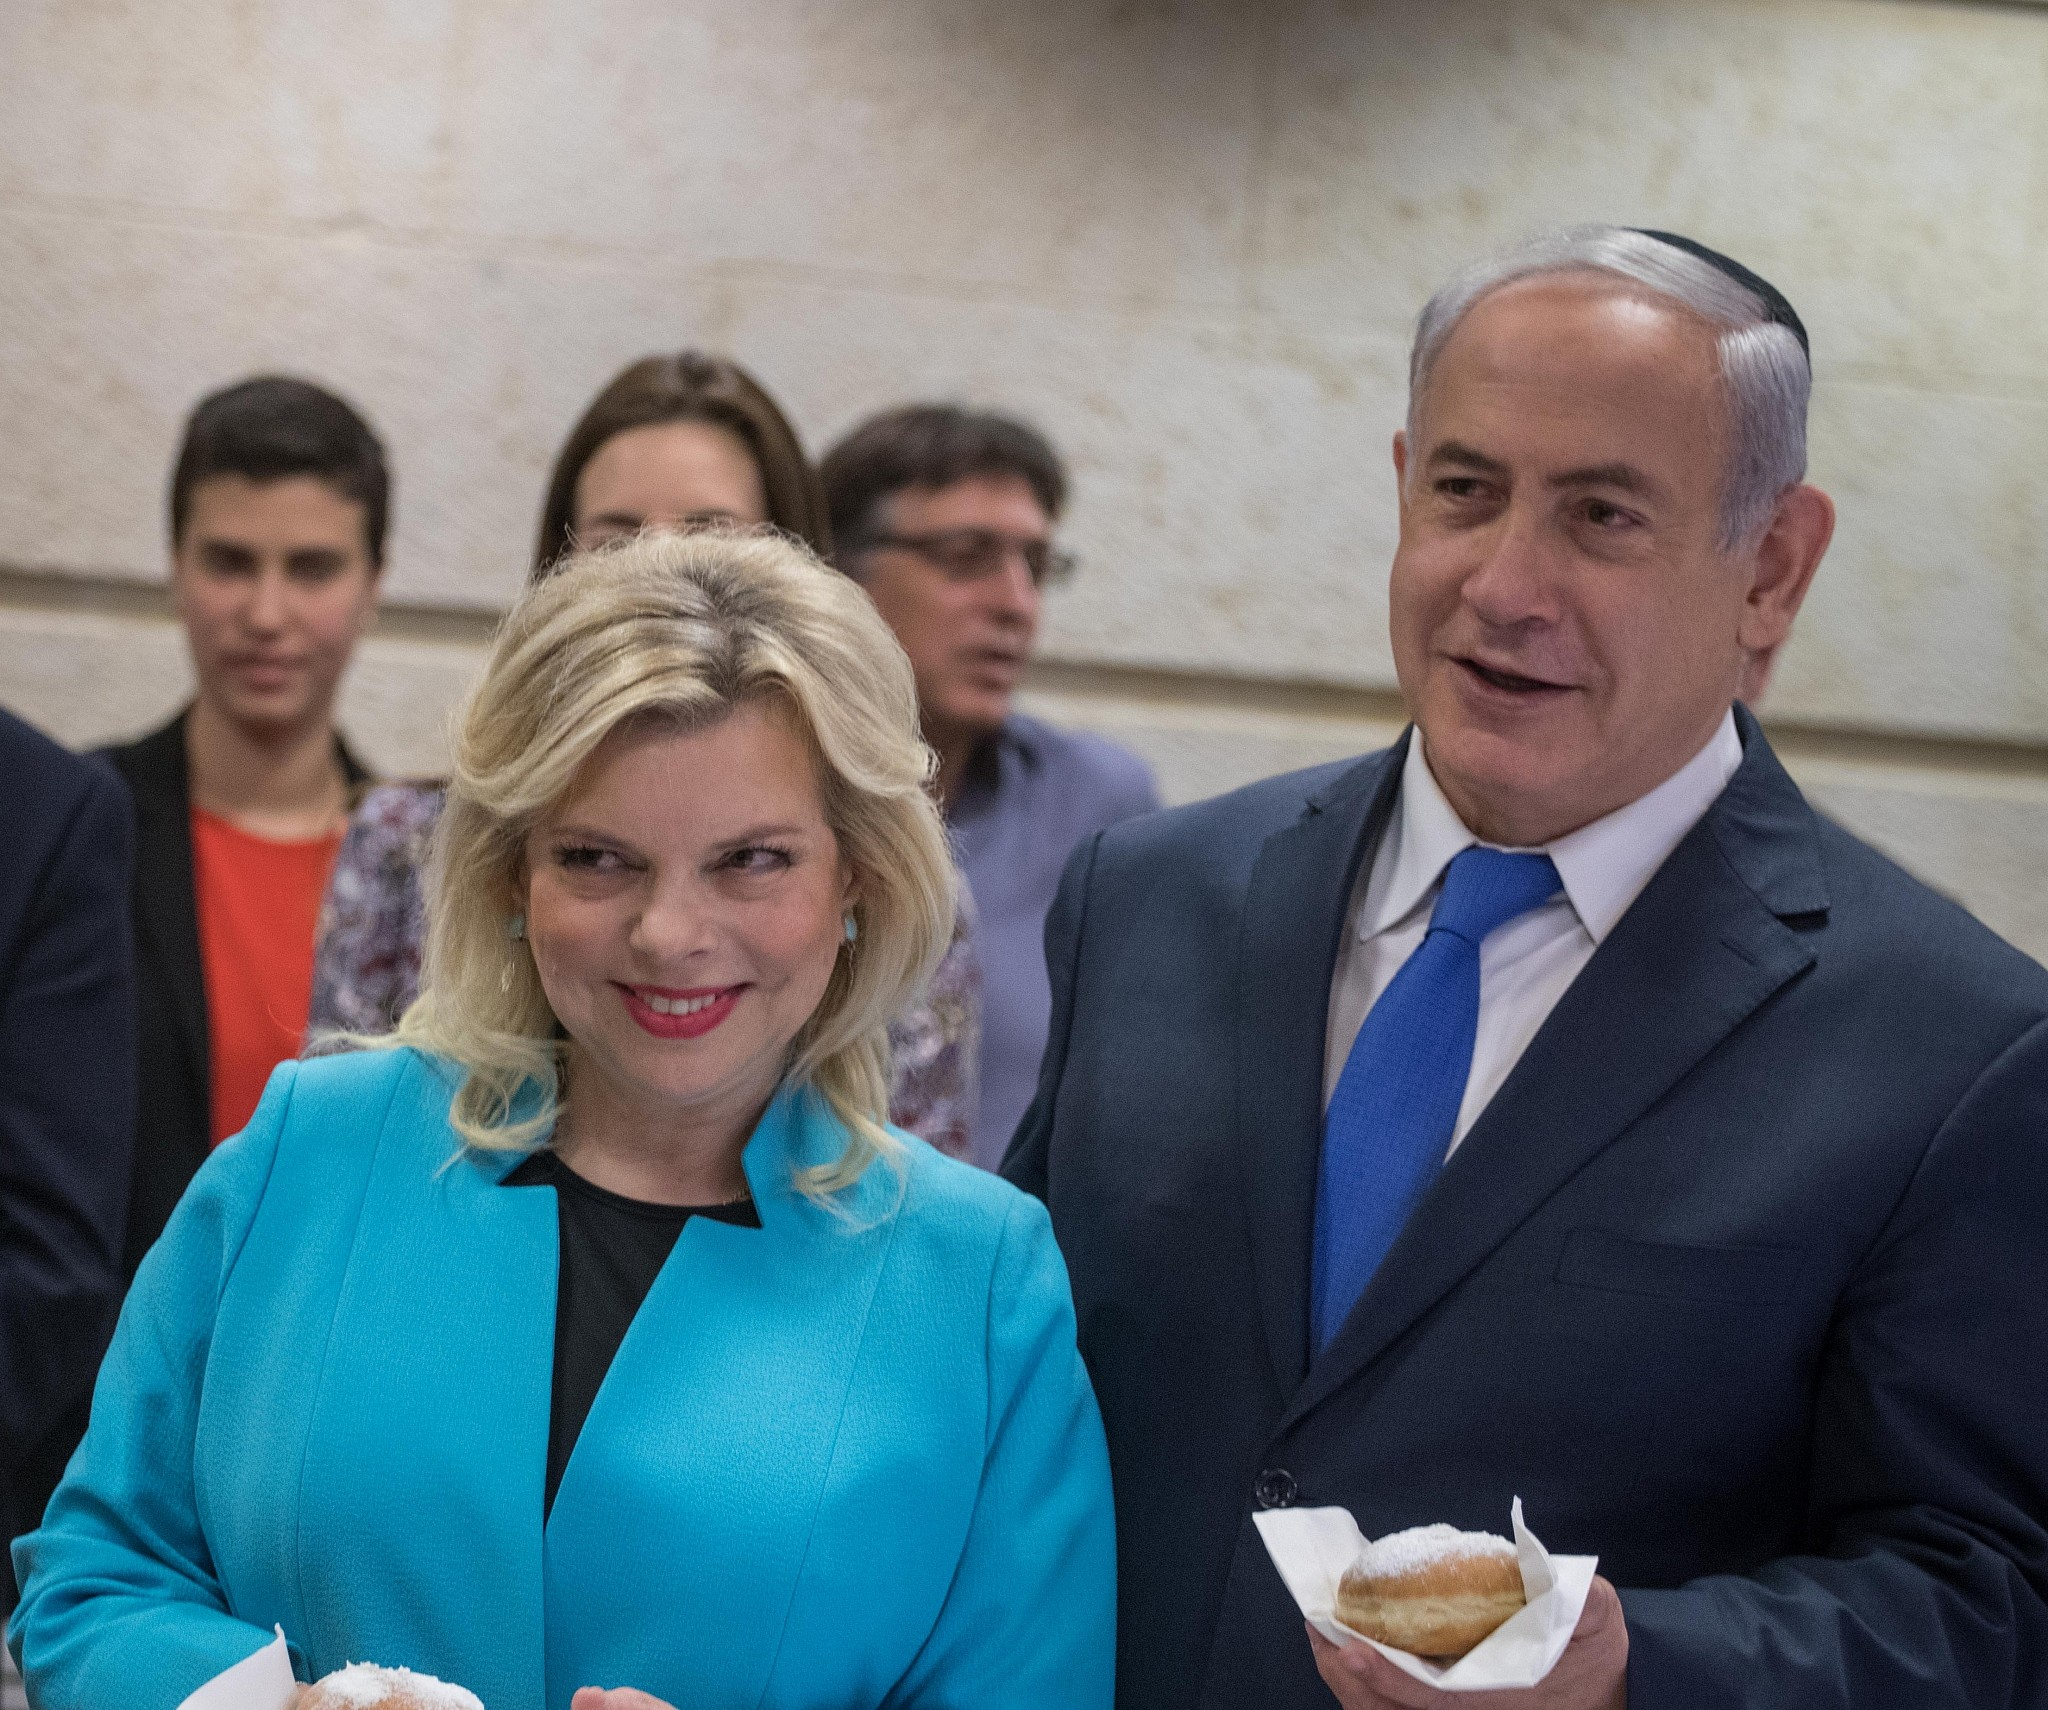 Police question Netanyahu for five hours over corruption